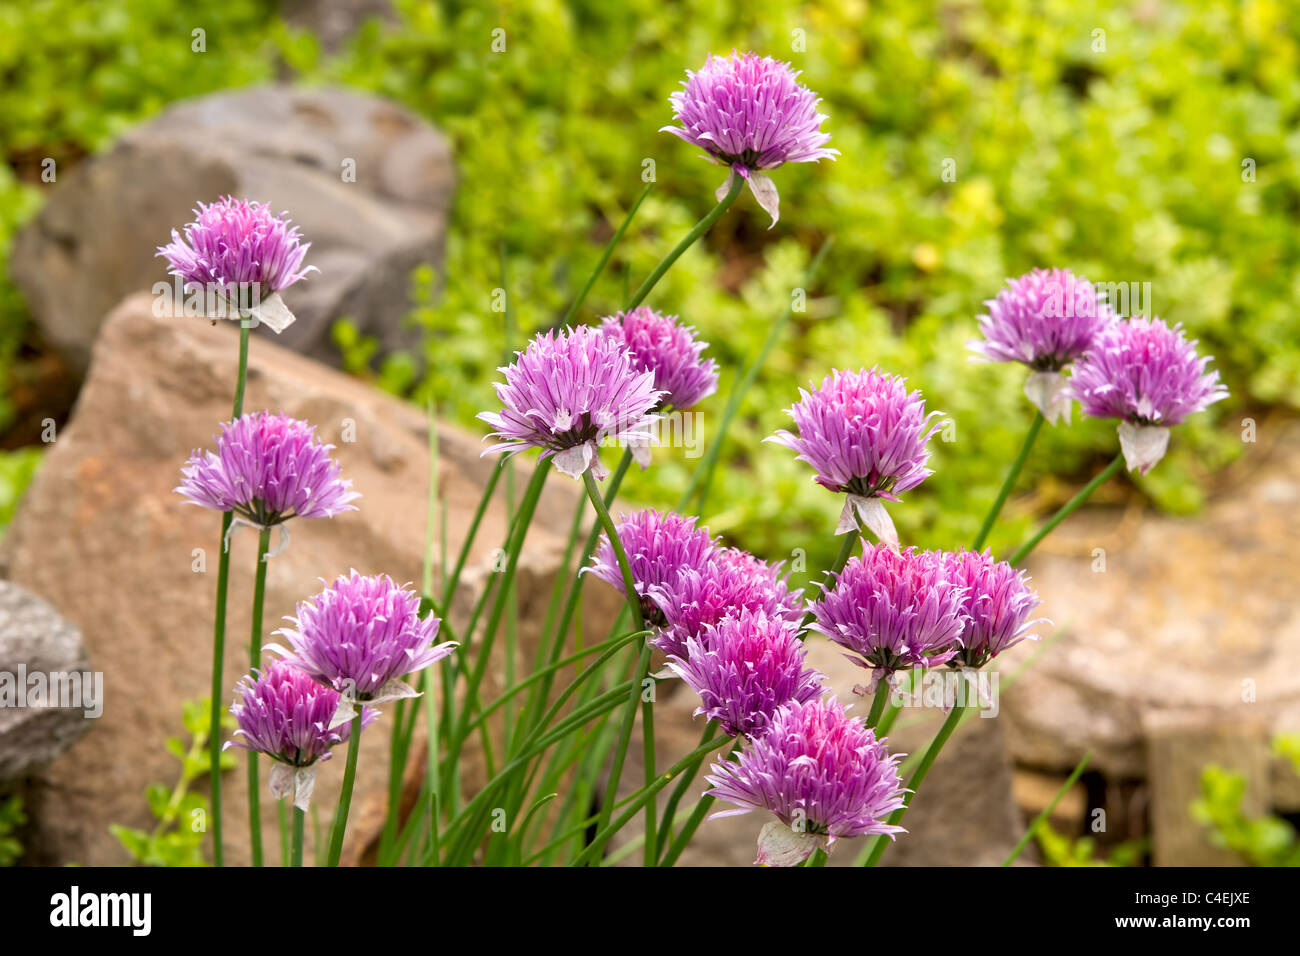 Garlic Chives Flowers Blooming in Herb Garden - Stock Image